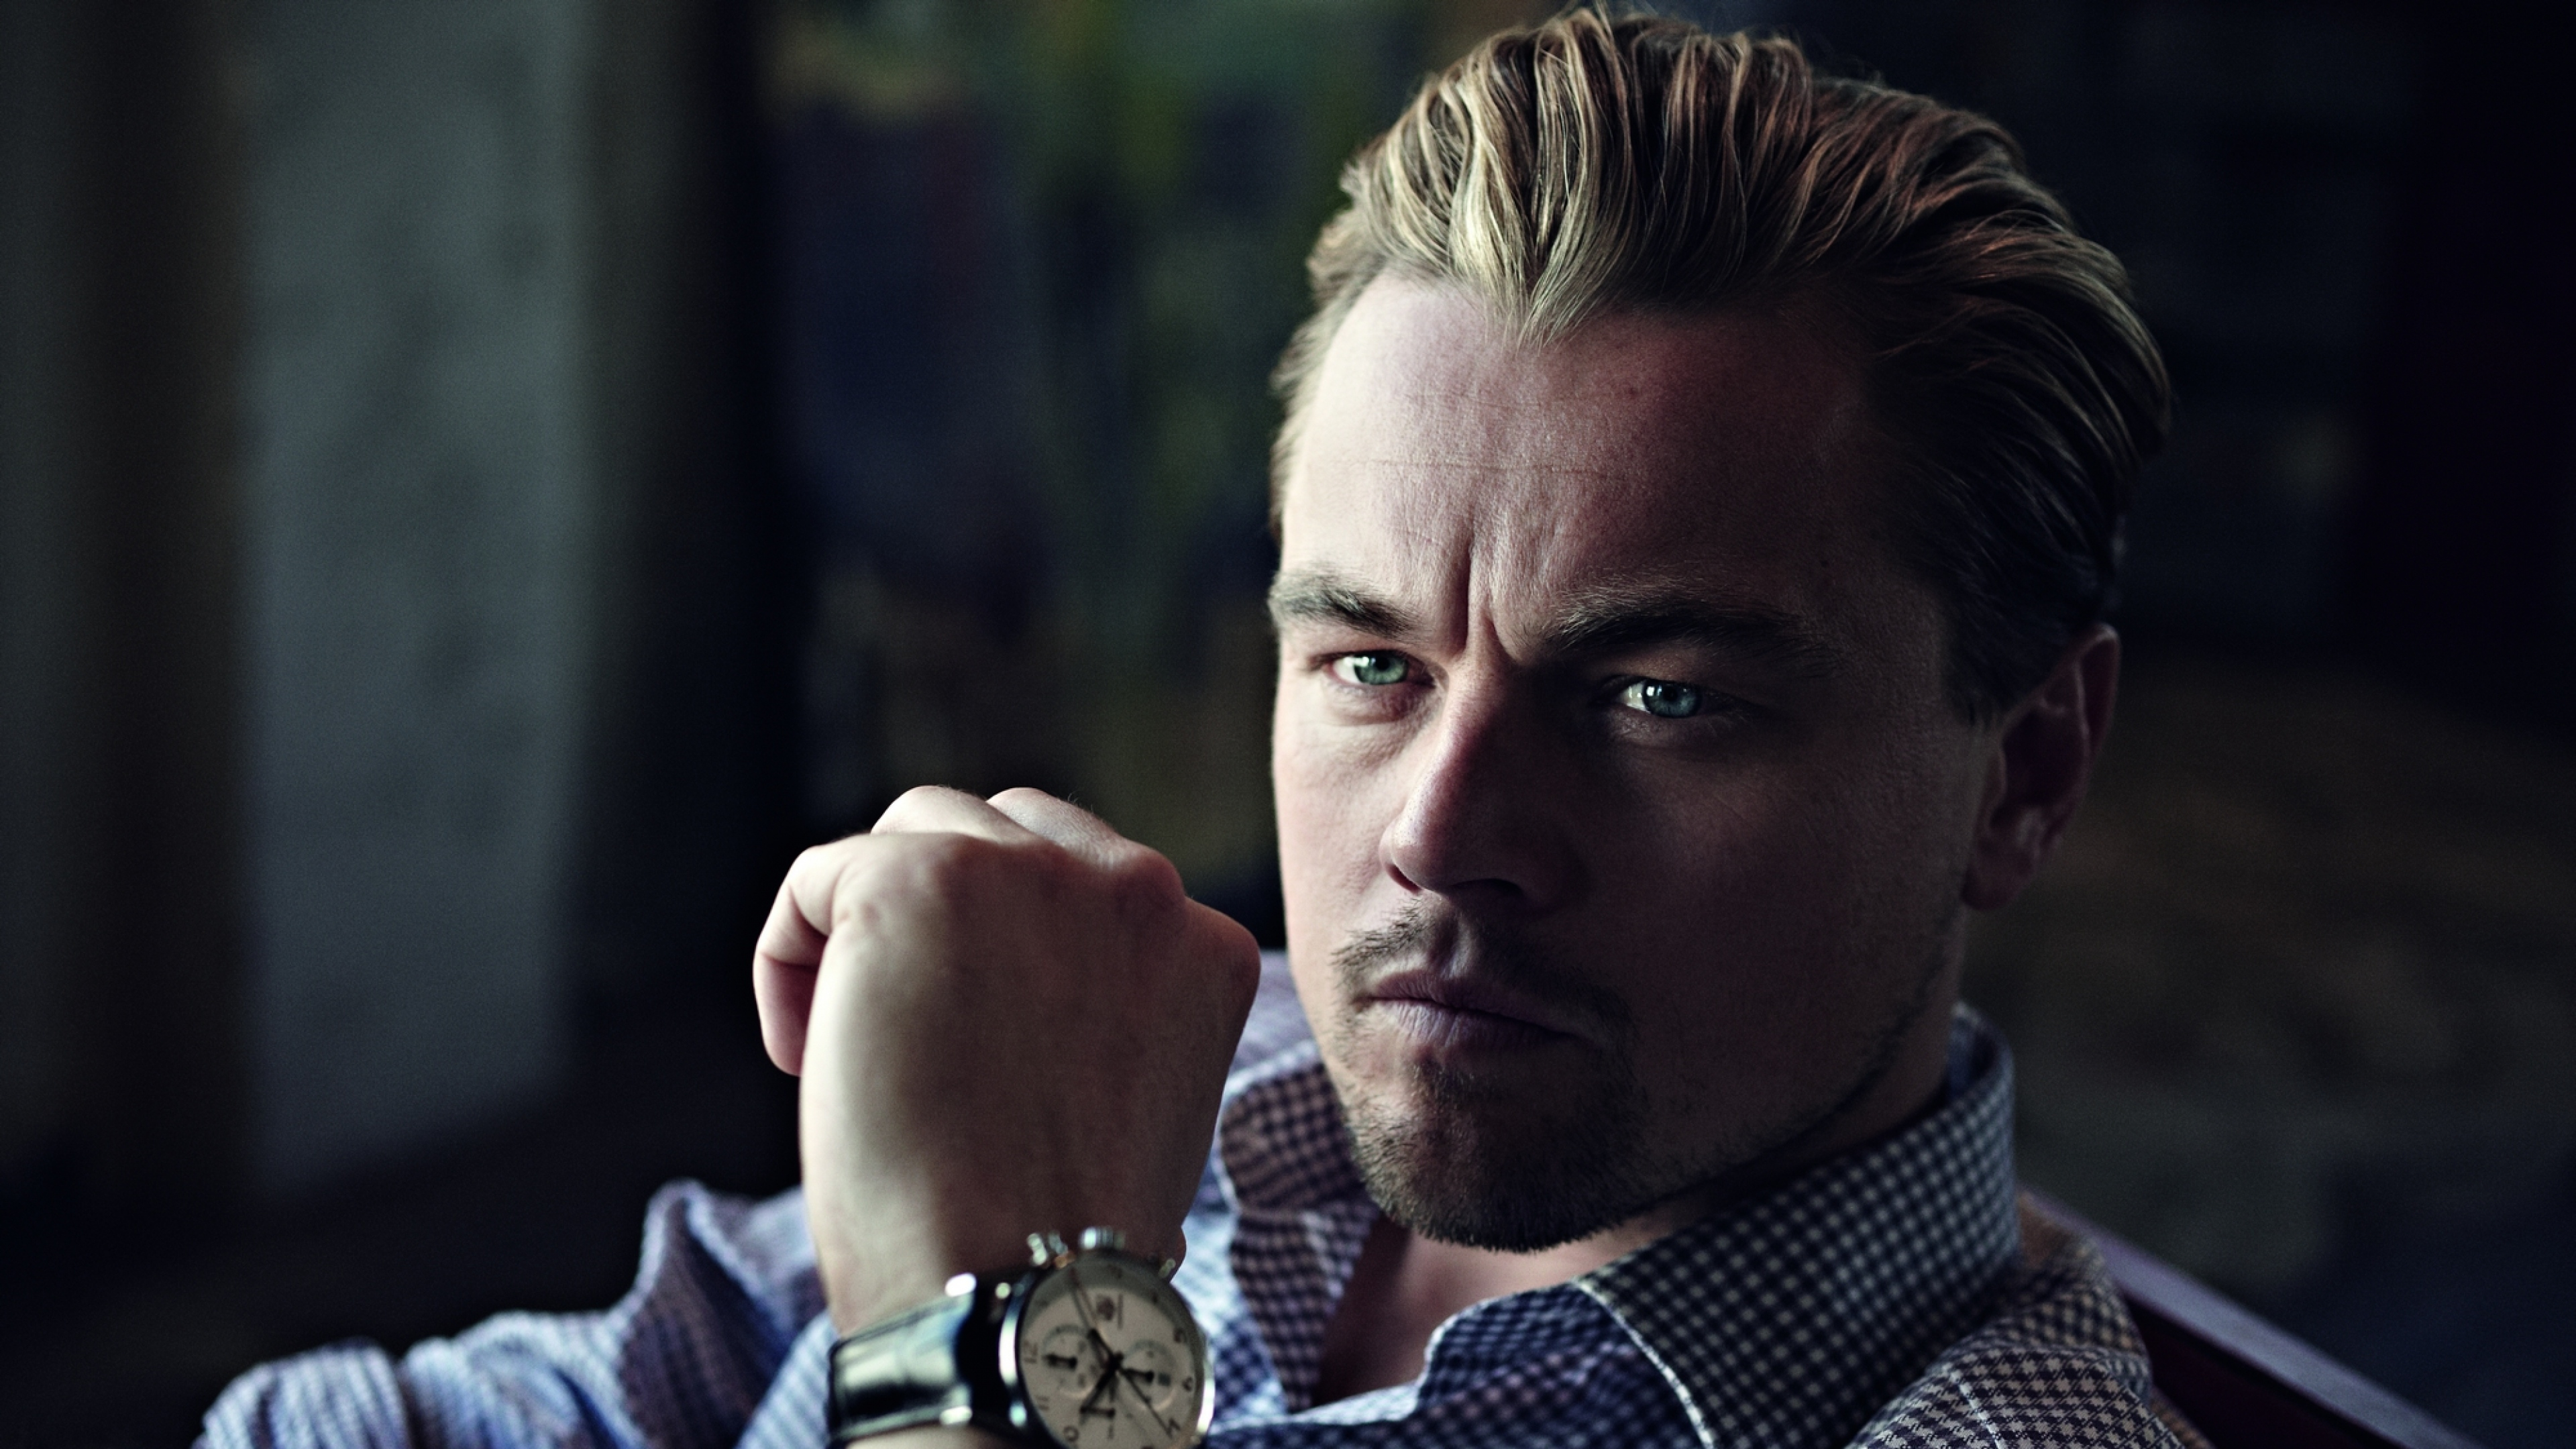 leonardo dicaprio, hd celebrities, 4k wallpapers, images